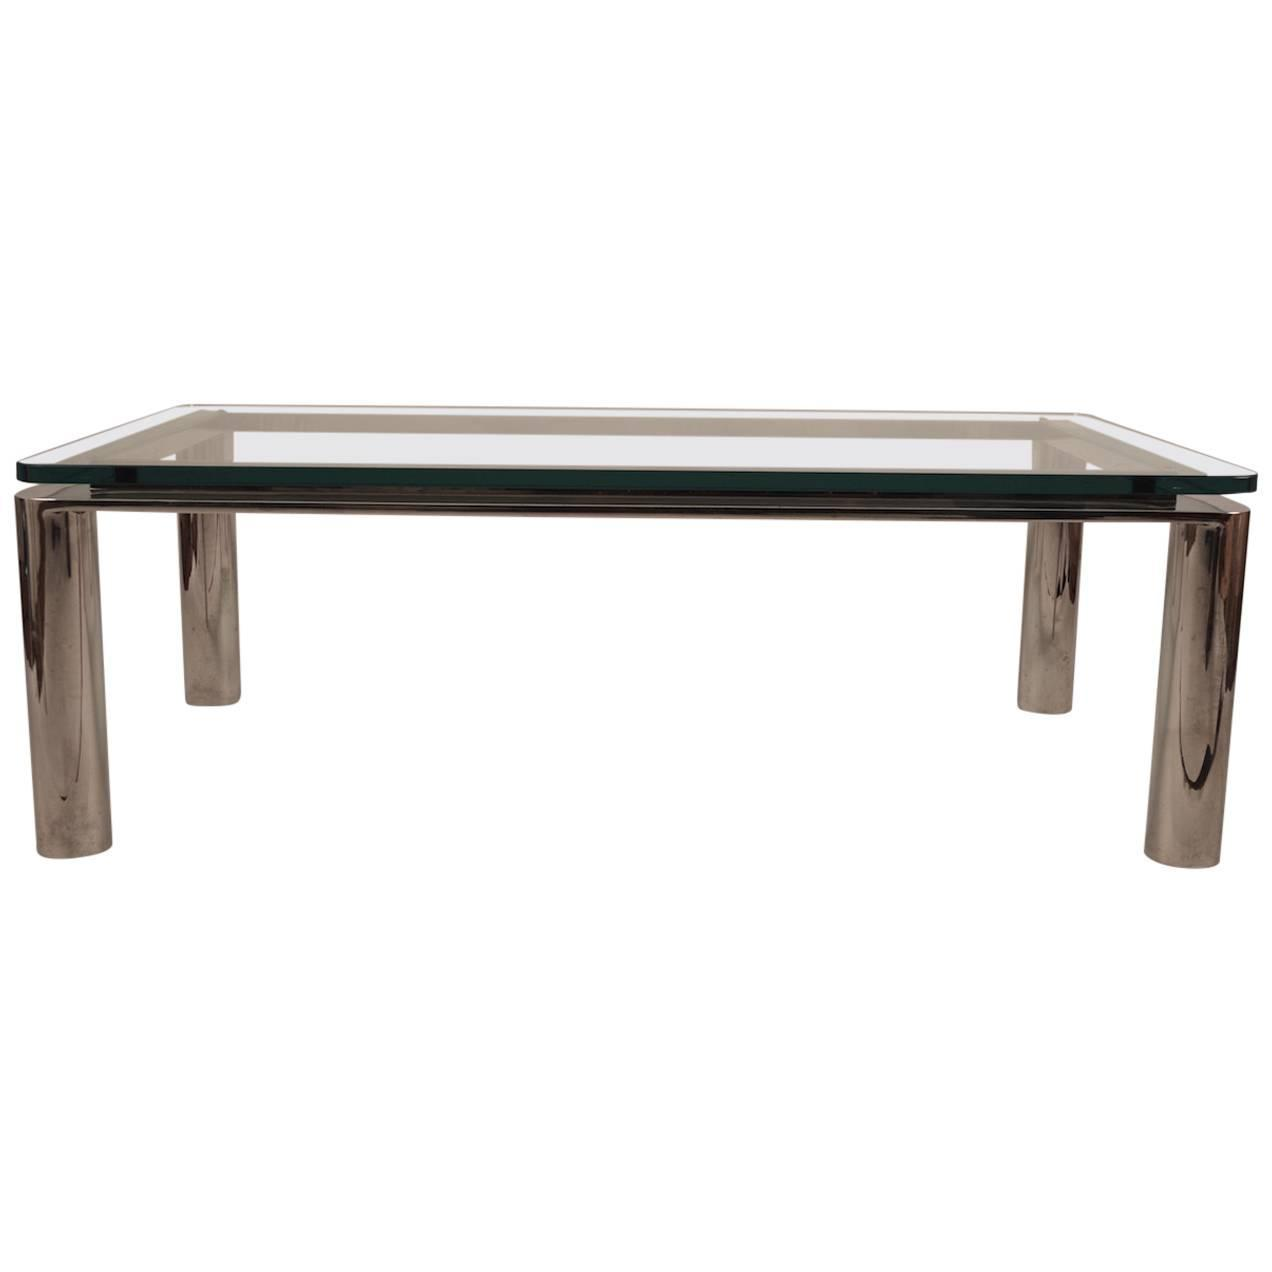 Chrome Base Plate Glass Top Coffee Table For Sale At 1stdibs